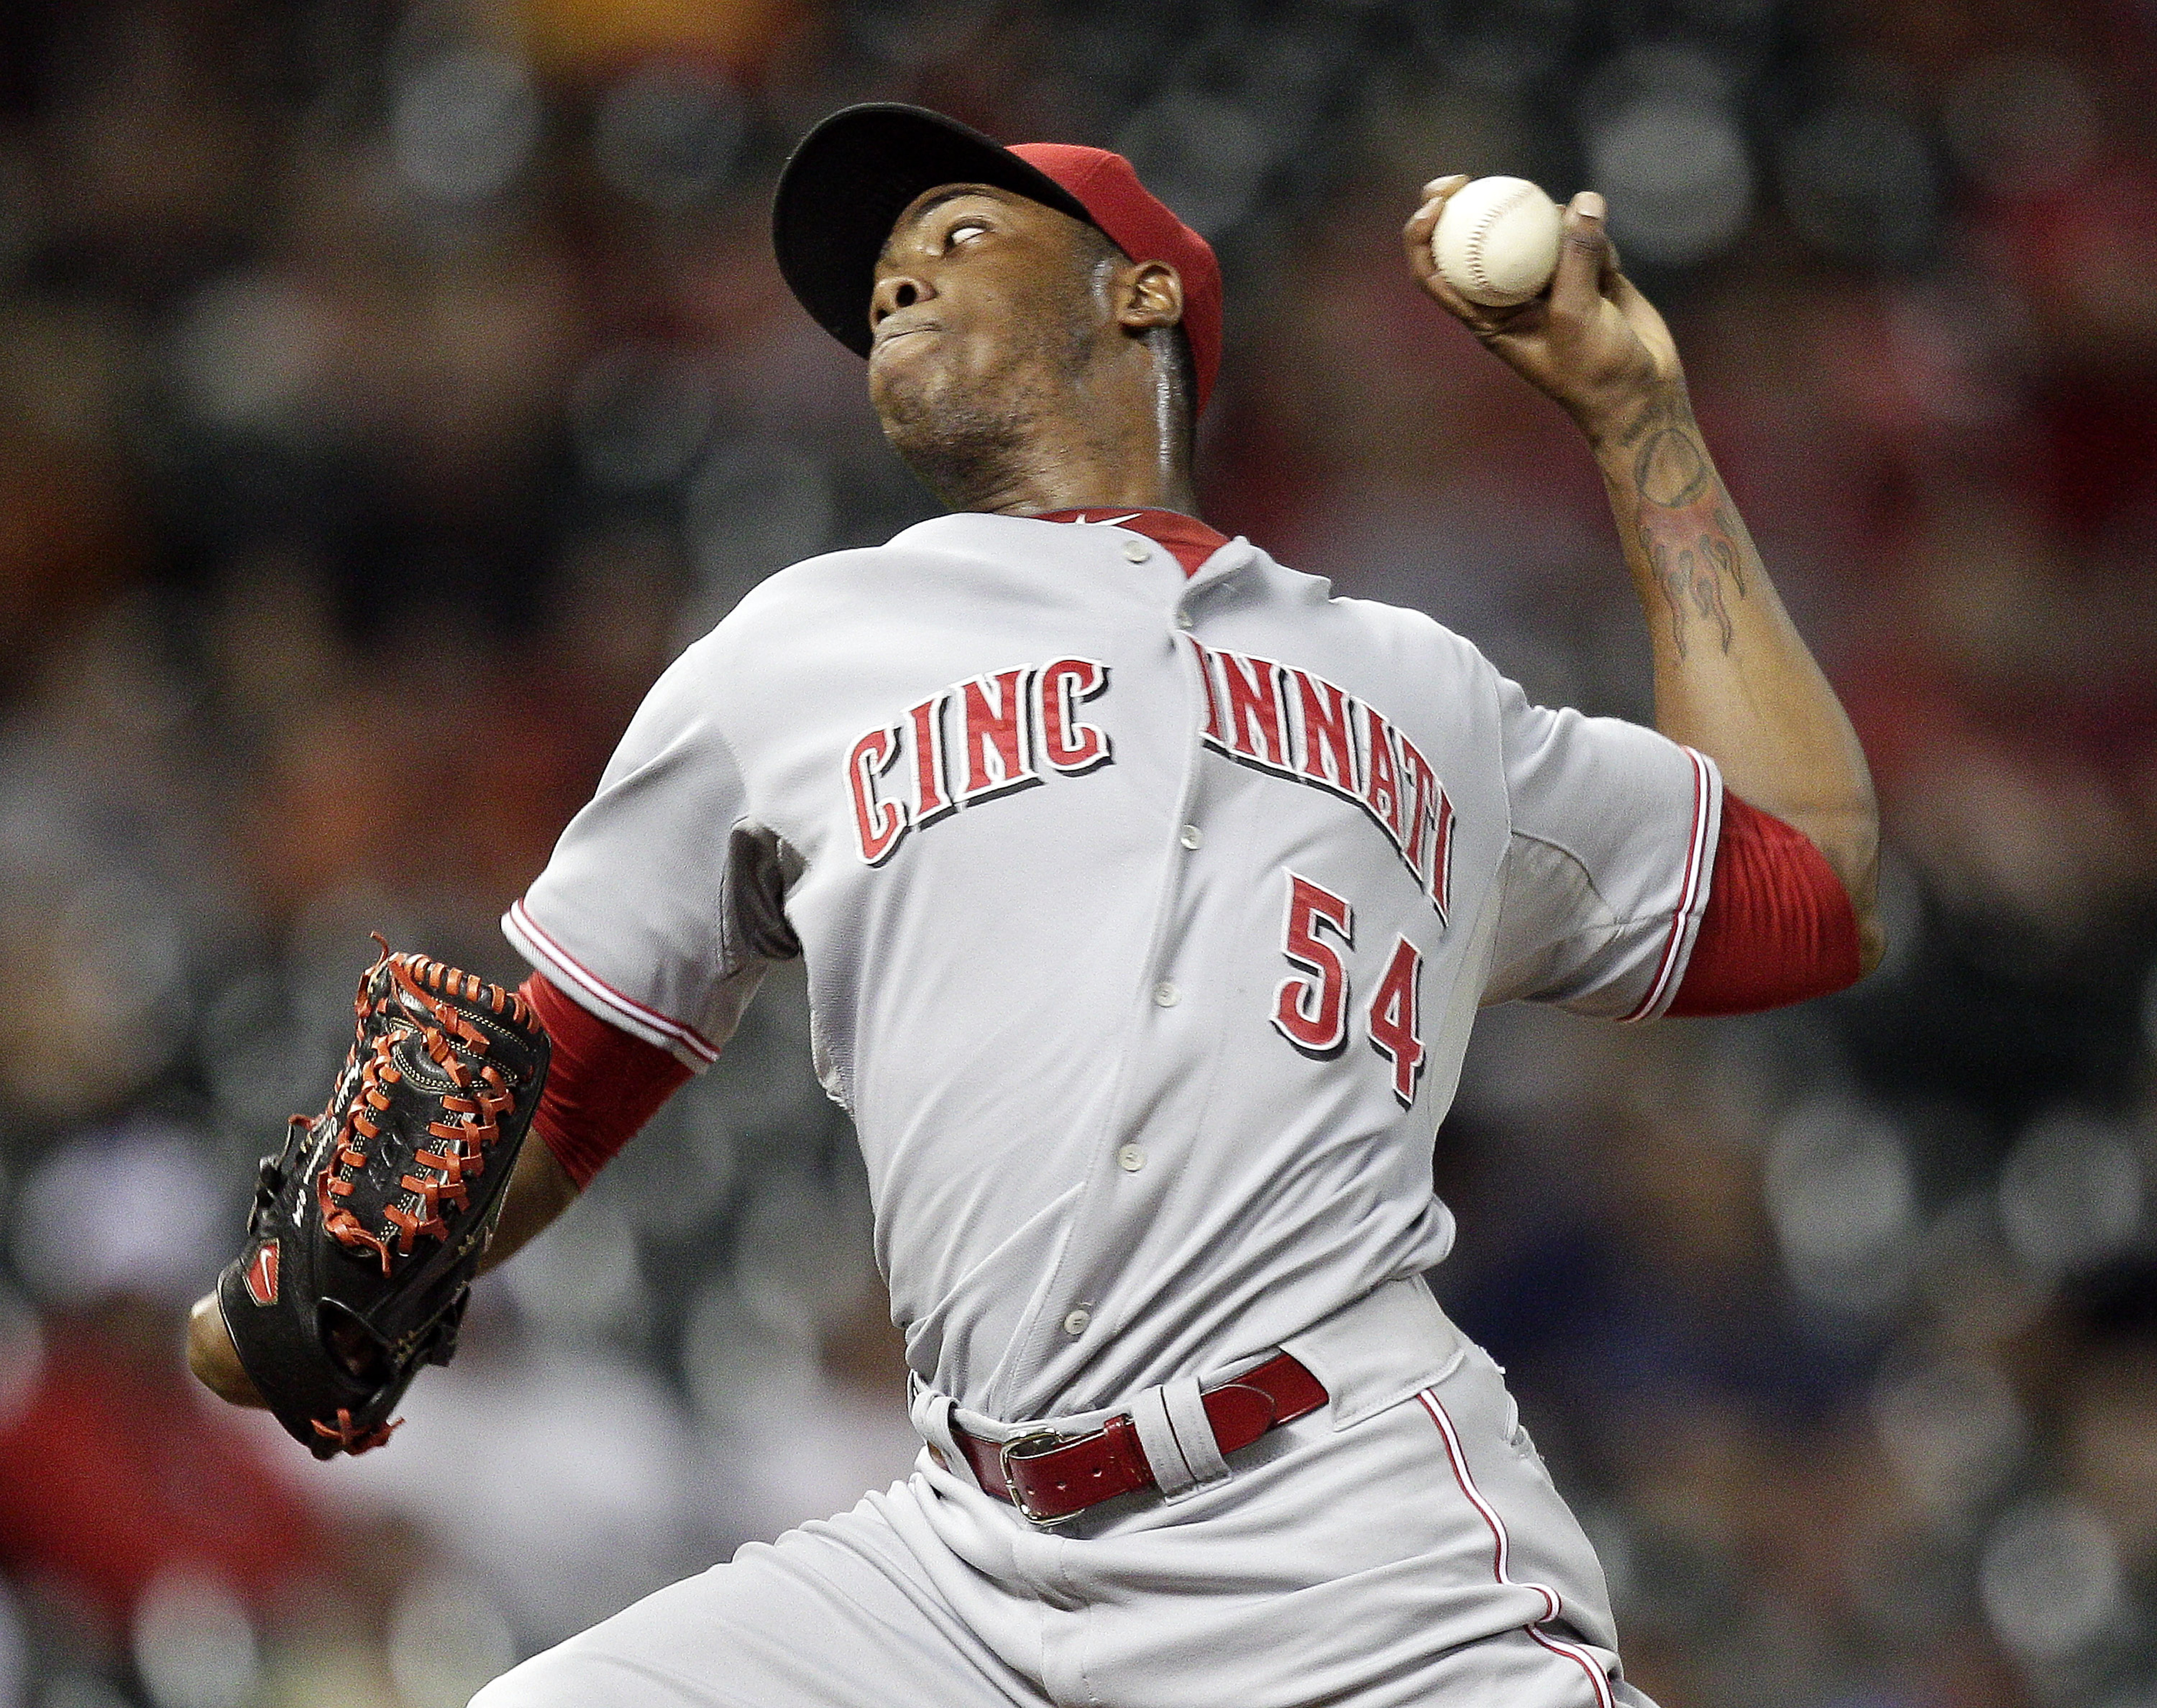 HOUSTON TX - JULY 25:  Aroldis Chapman #54 of the Cincinnati Reds closes out the Houston Astros in the ninth inning at Minute Maid Park on July 25, 2012 in Houston, Texas. Cincinnati Reds win 5-3.  (Photo by Bob Levey/Getty Images)